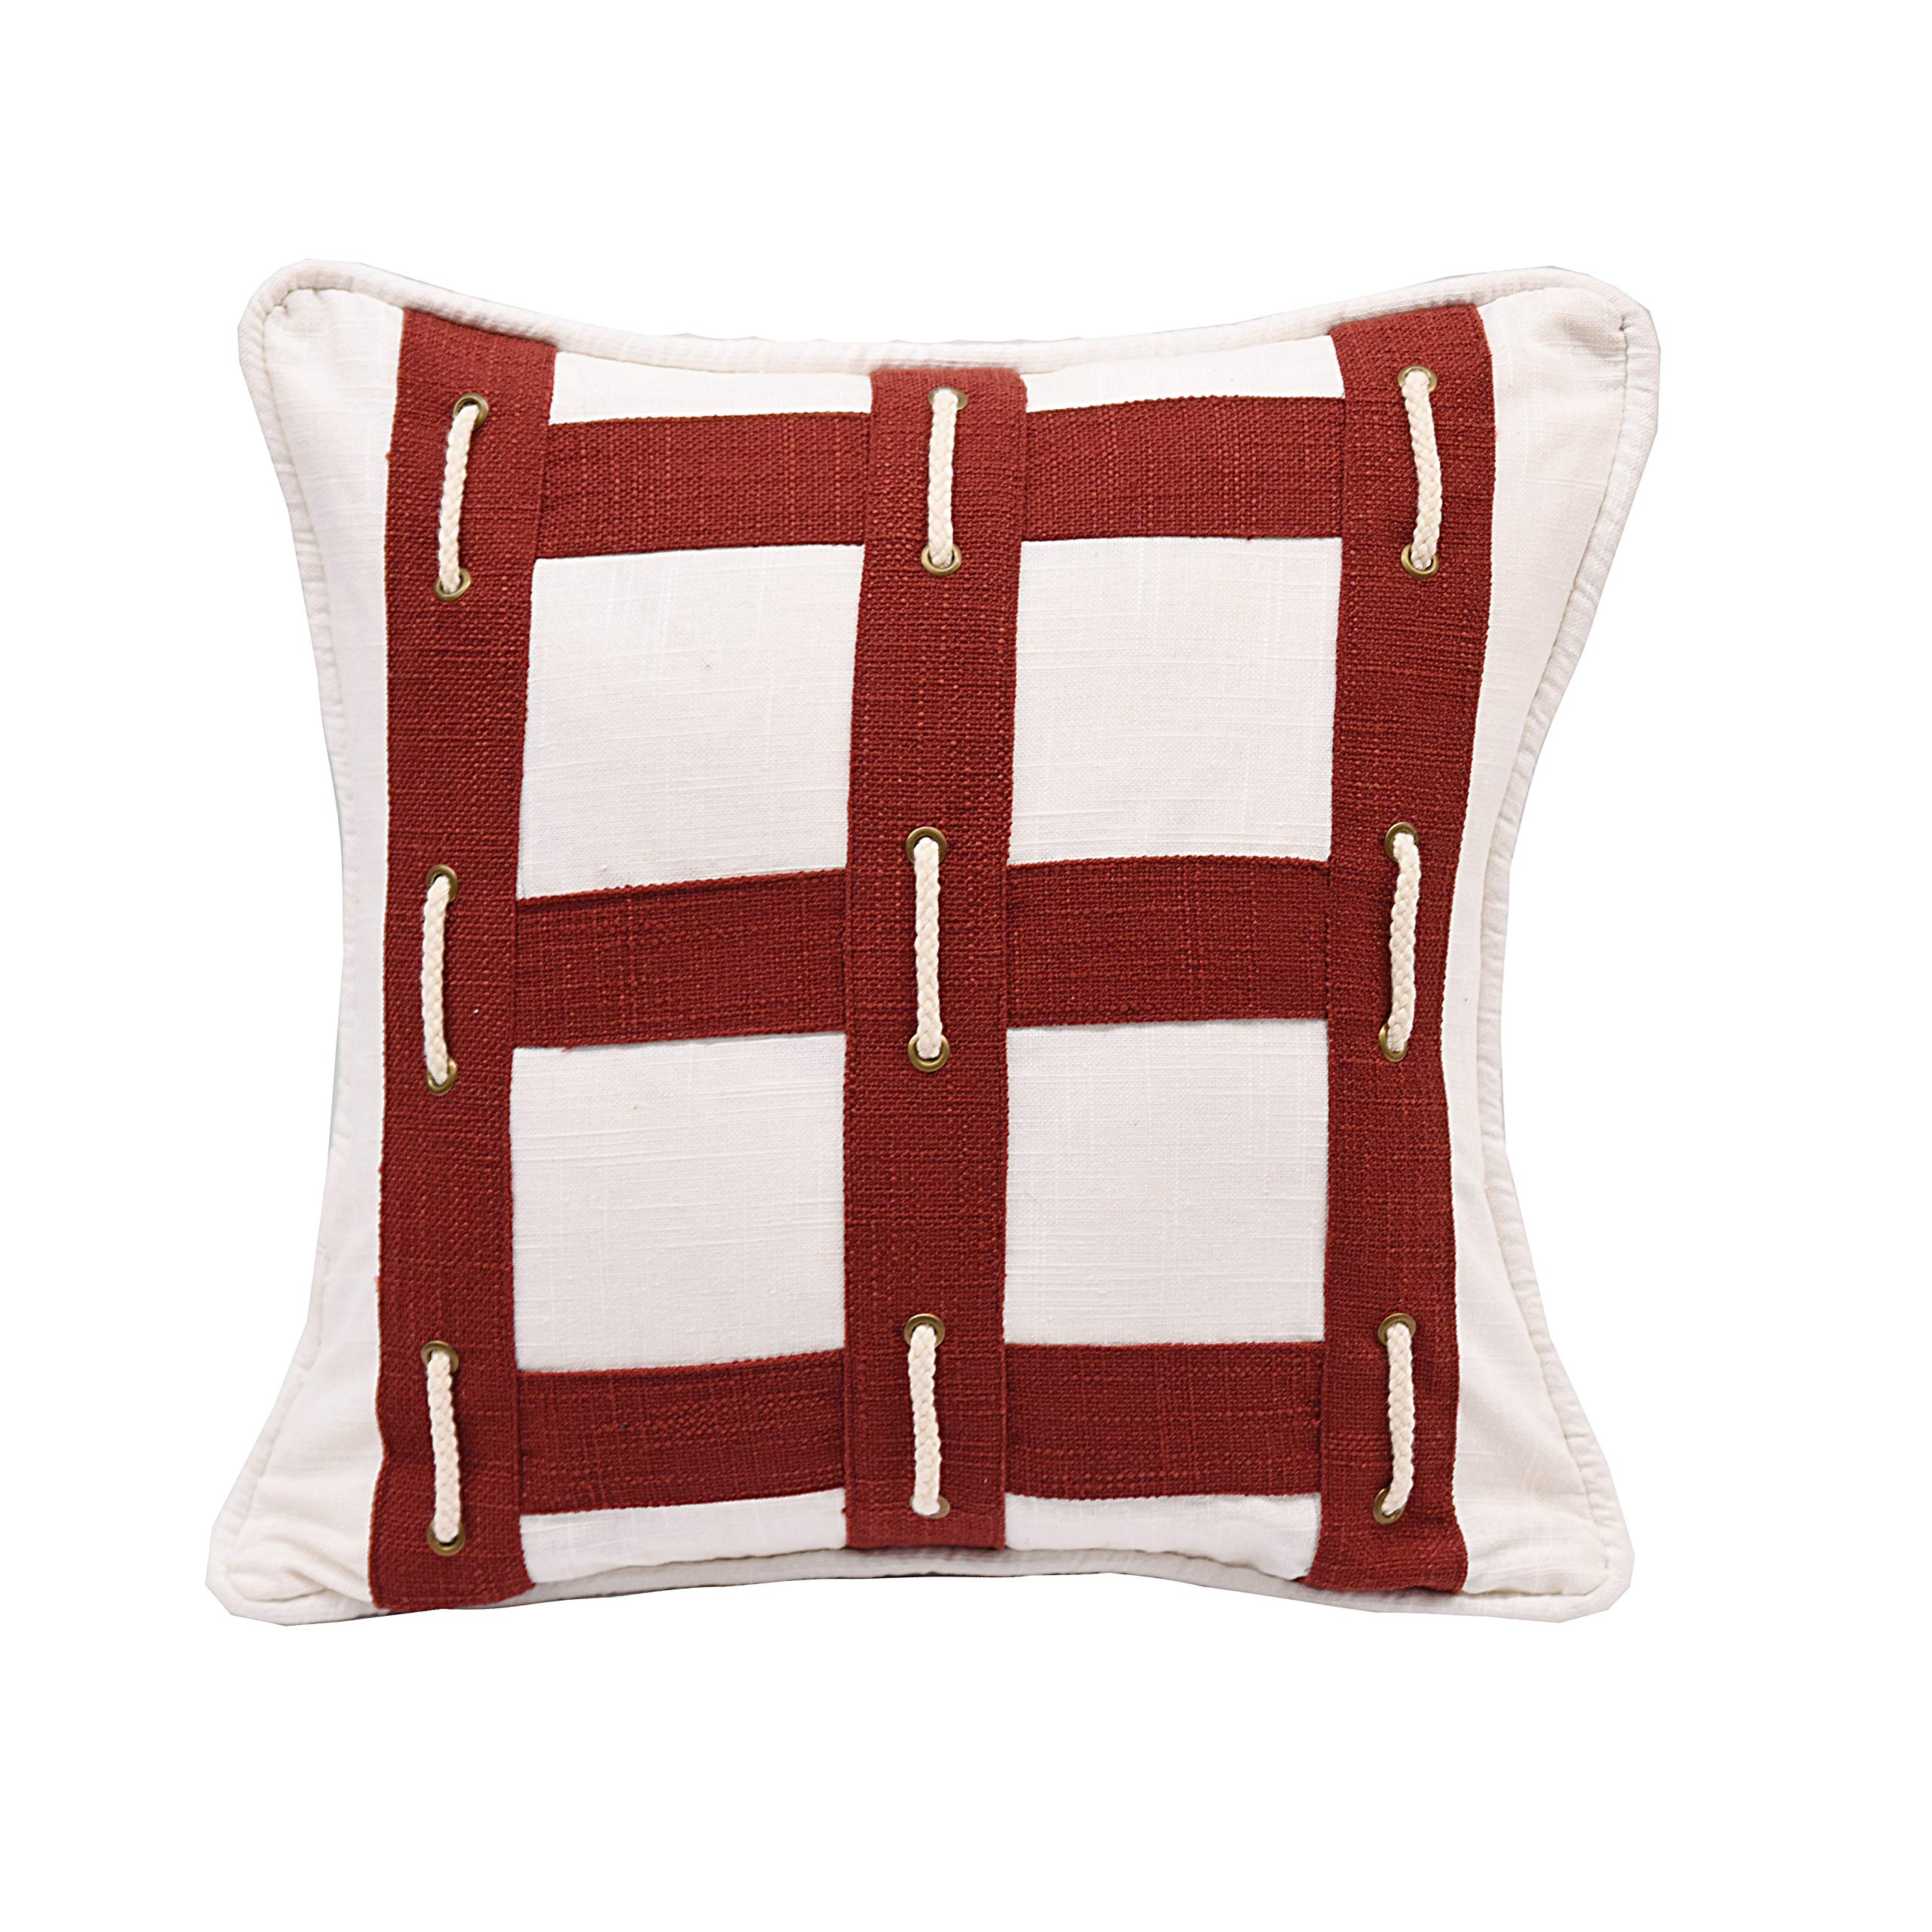 HiEnd Accents Nautical Red & White w/Rope 18'' x 18'' Throw Pillow